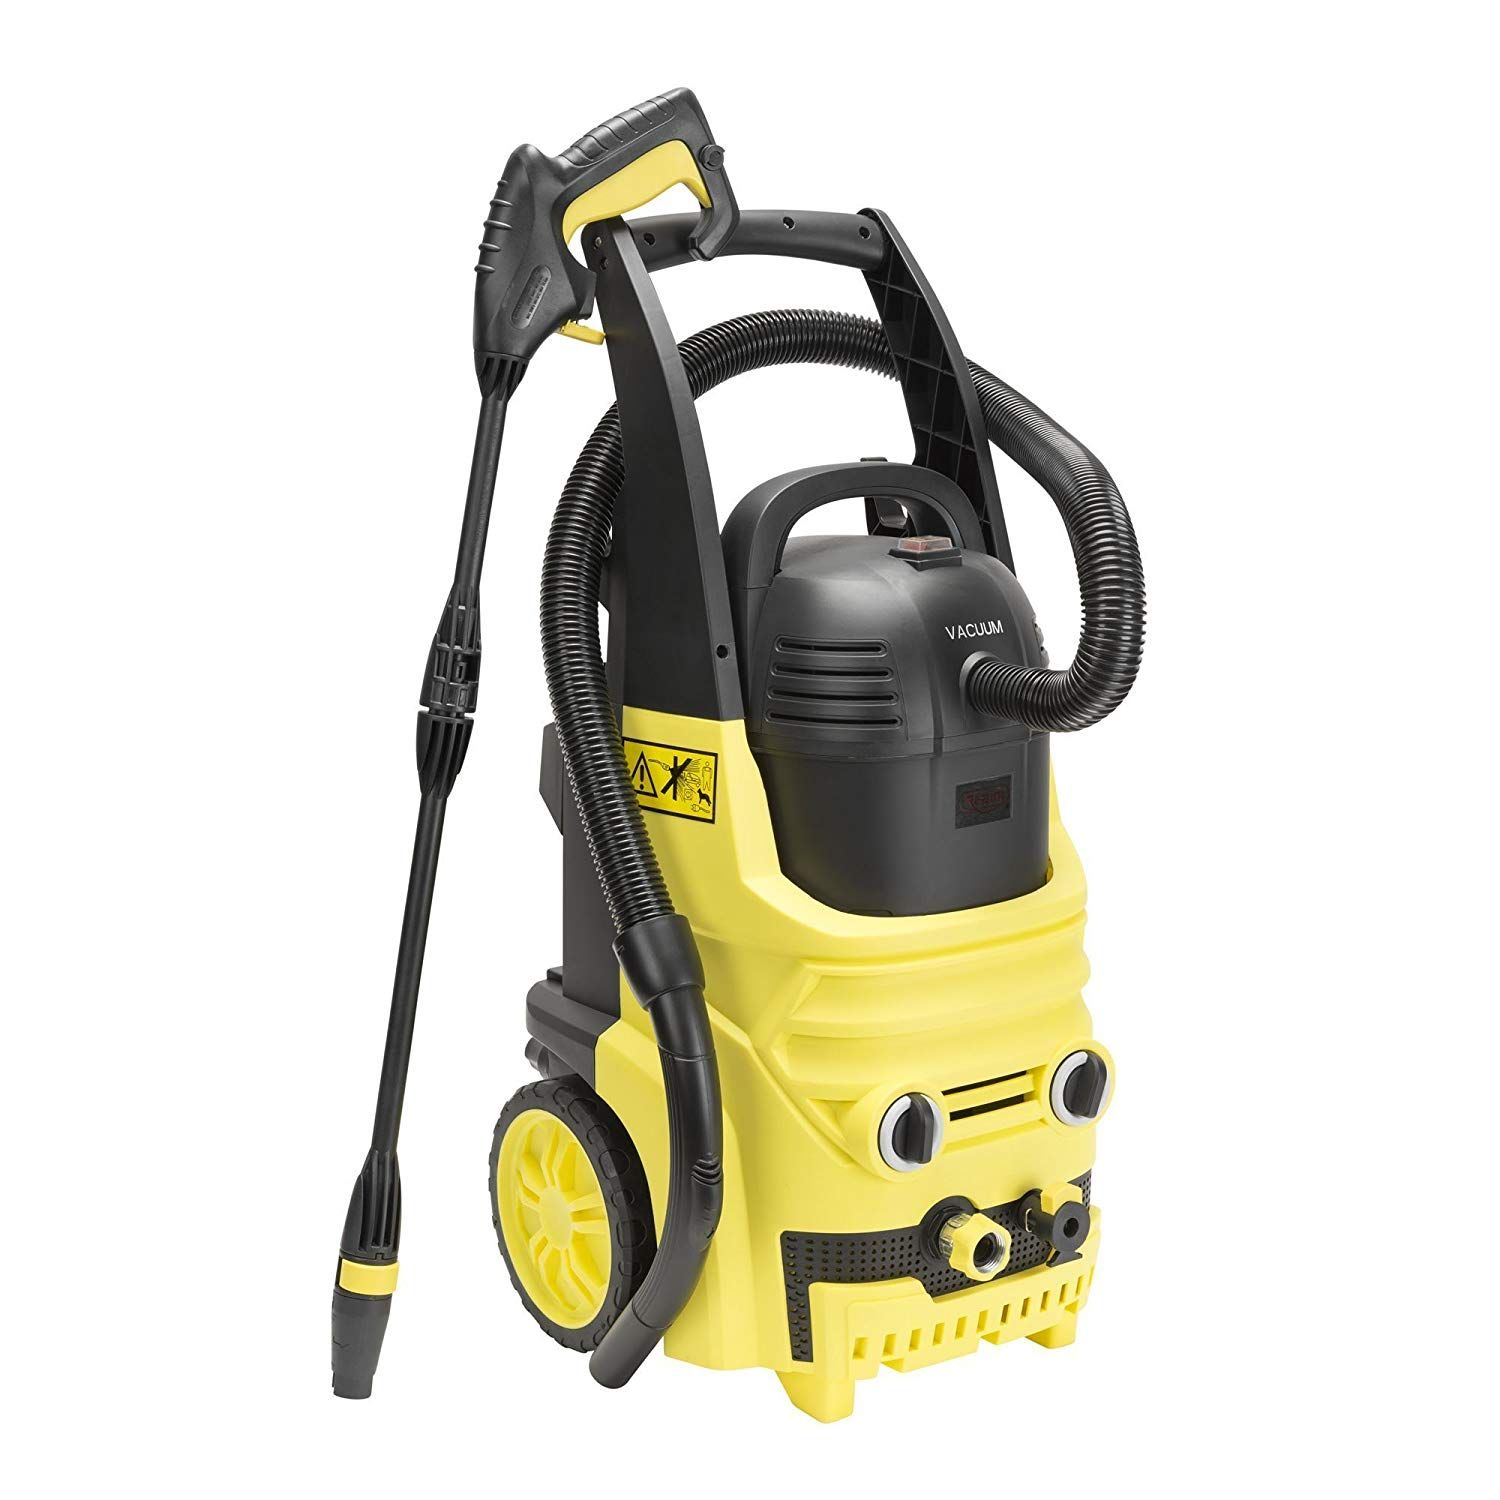 Realm Electric Pressure Washer And Vacuum Cleaner Is An Ideal Way To Efficiently Clean Siding Car Patio Furniture Room It Has The Most Advanced Pump